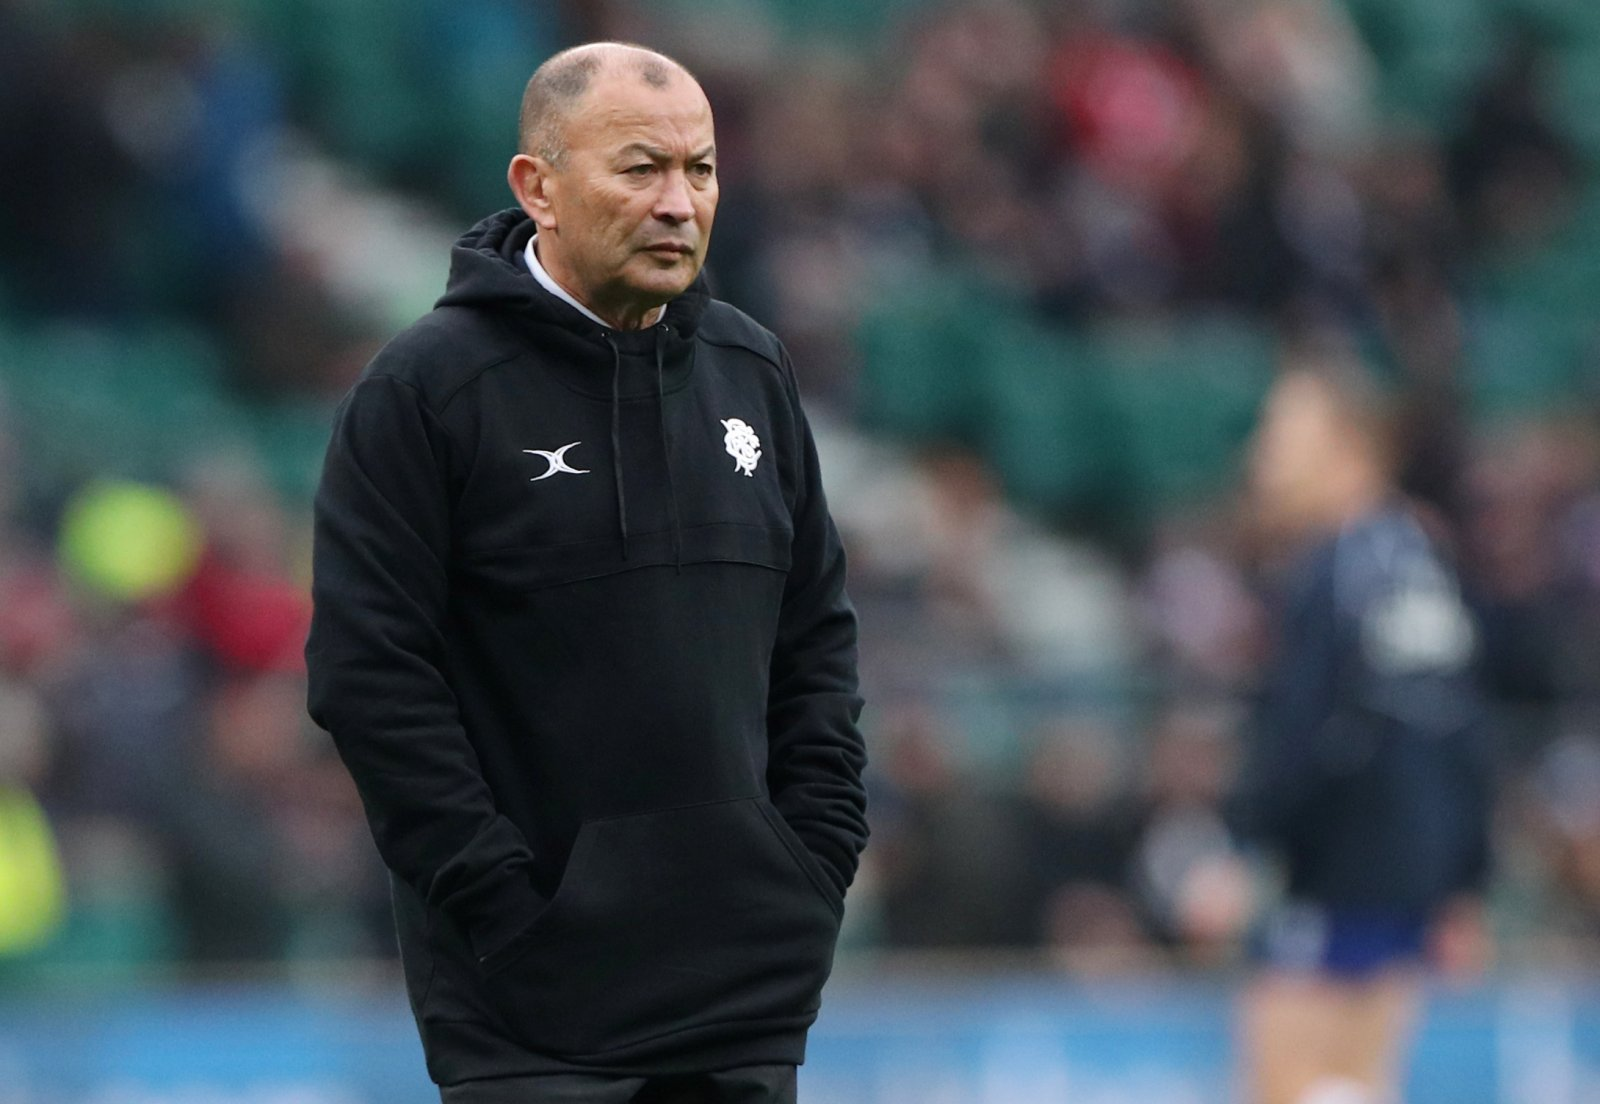 Liverpool: Fans adored comments made by England rugby head coach Eddie Jones